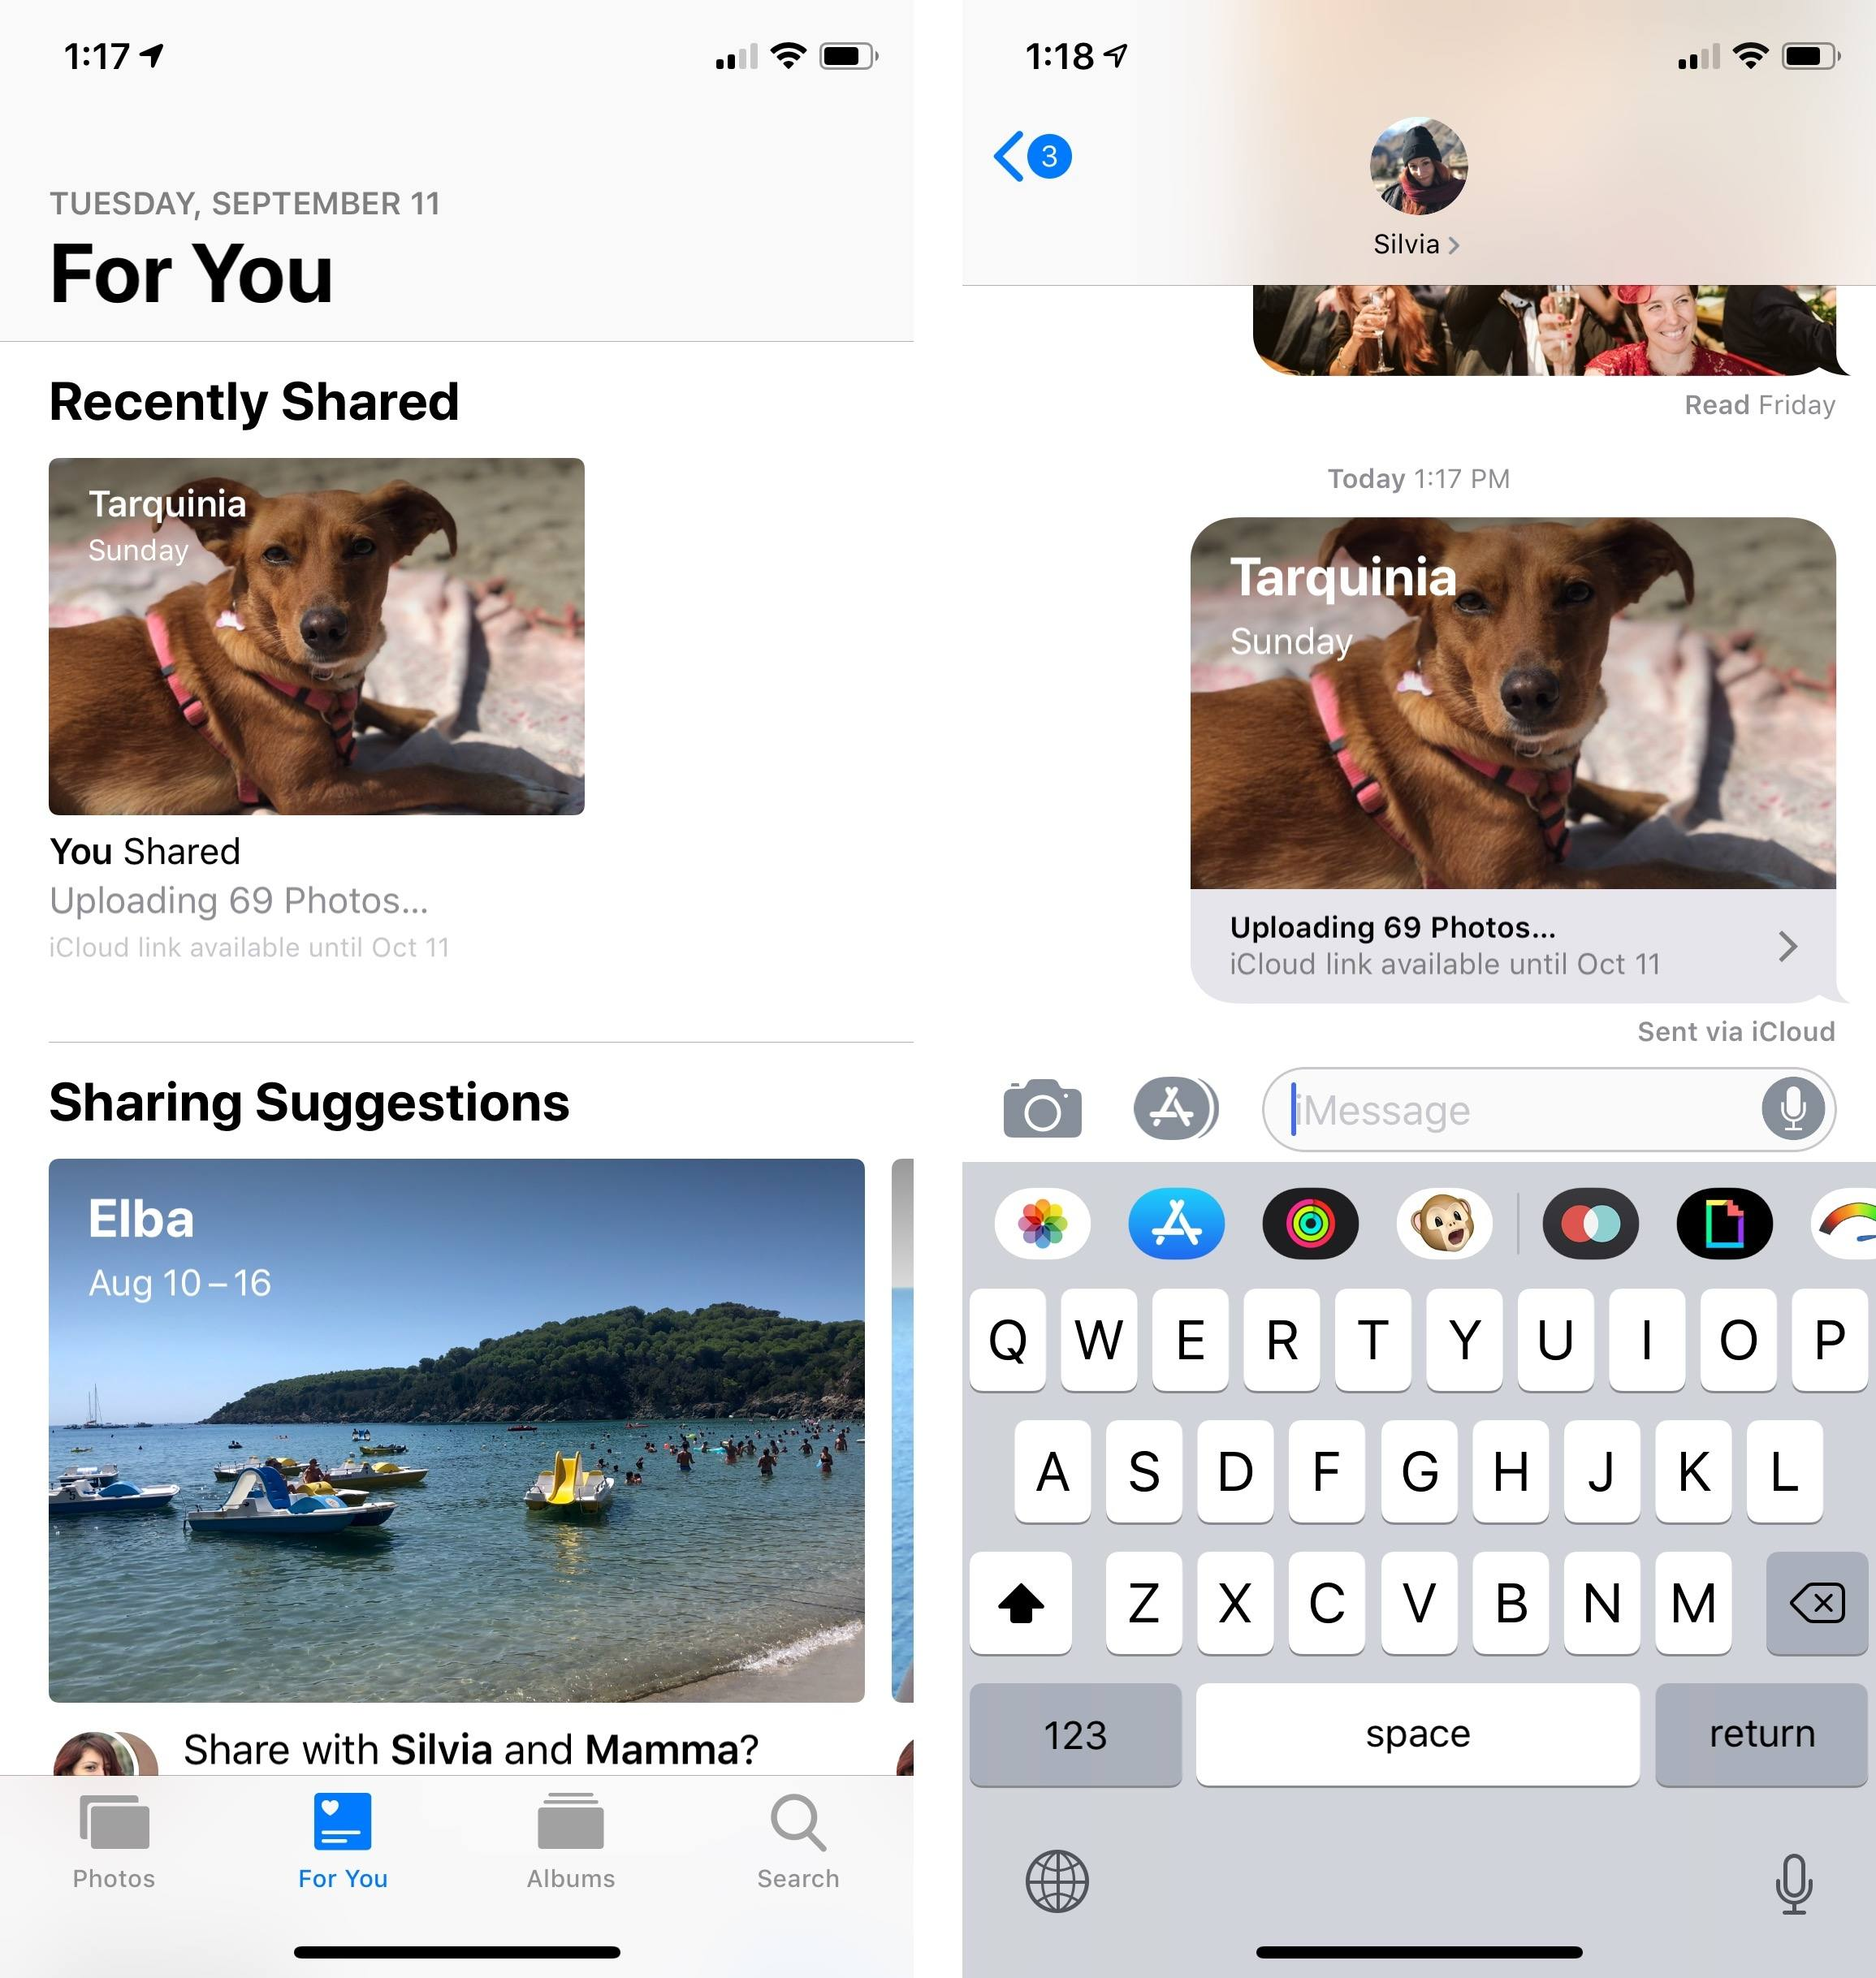 iMessage is the easiest way to share a collection of photos.